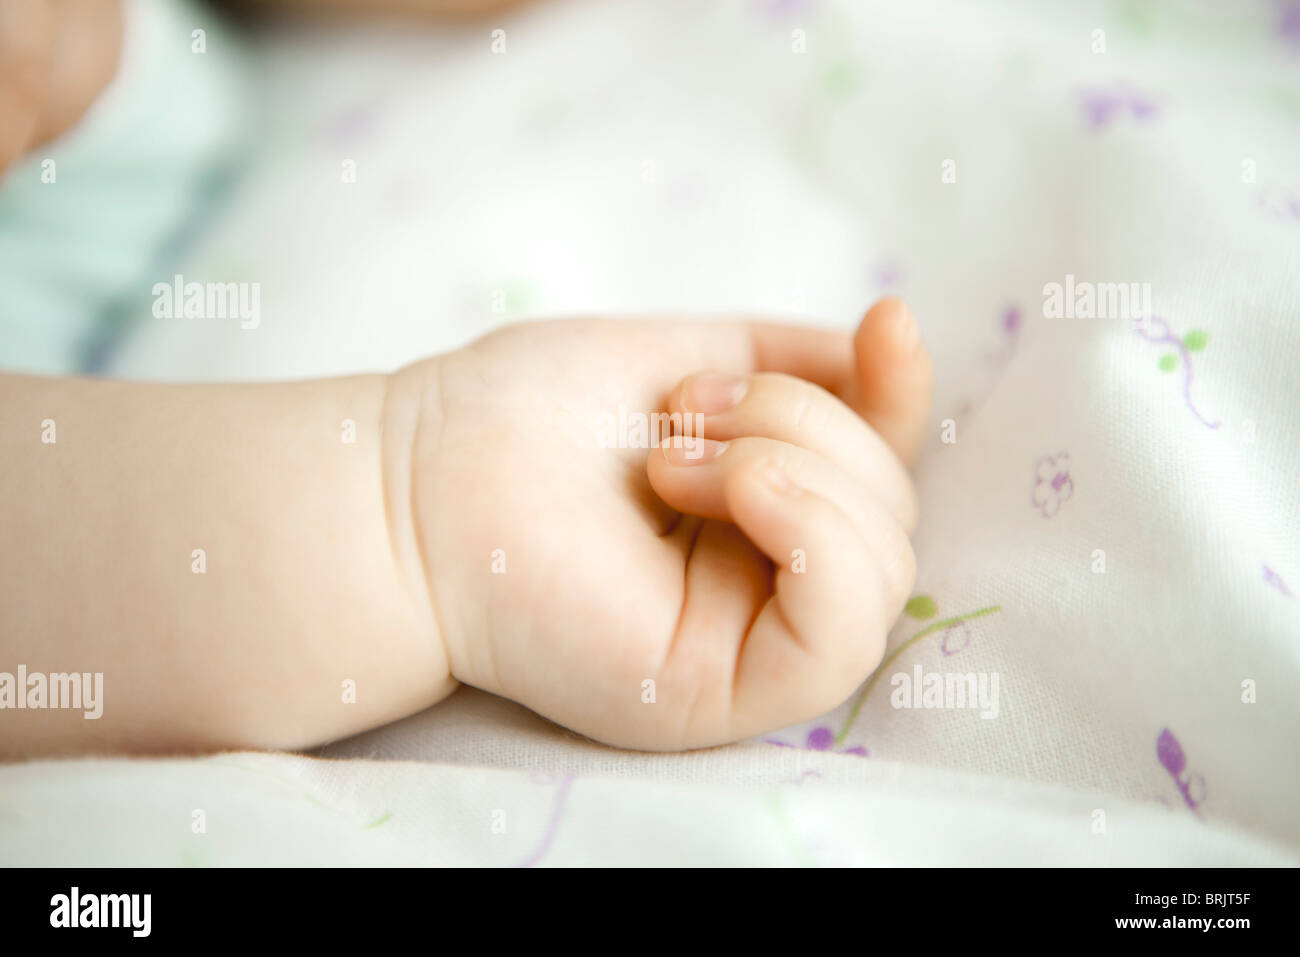 Infant's hand, close-up - Stock Image